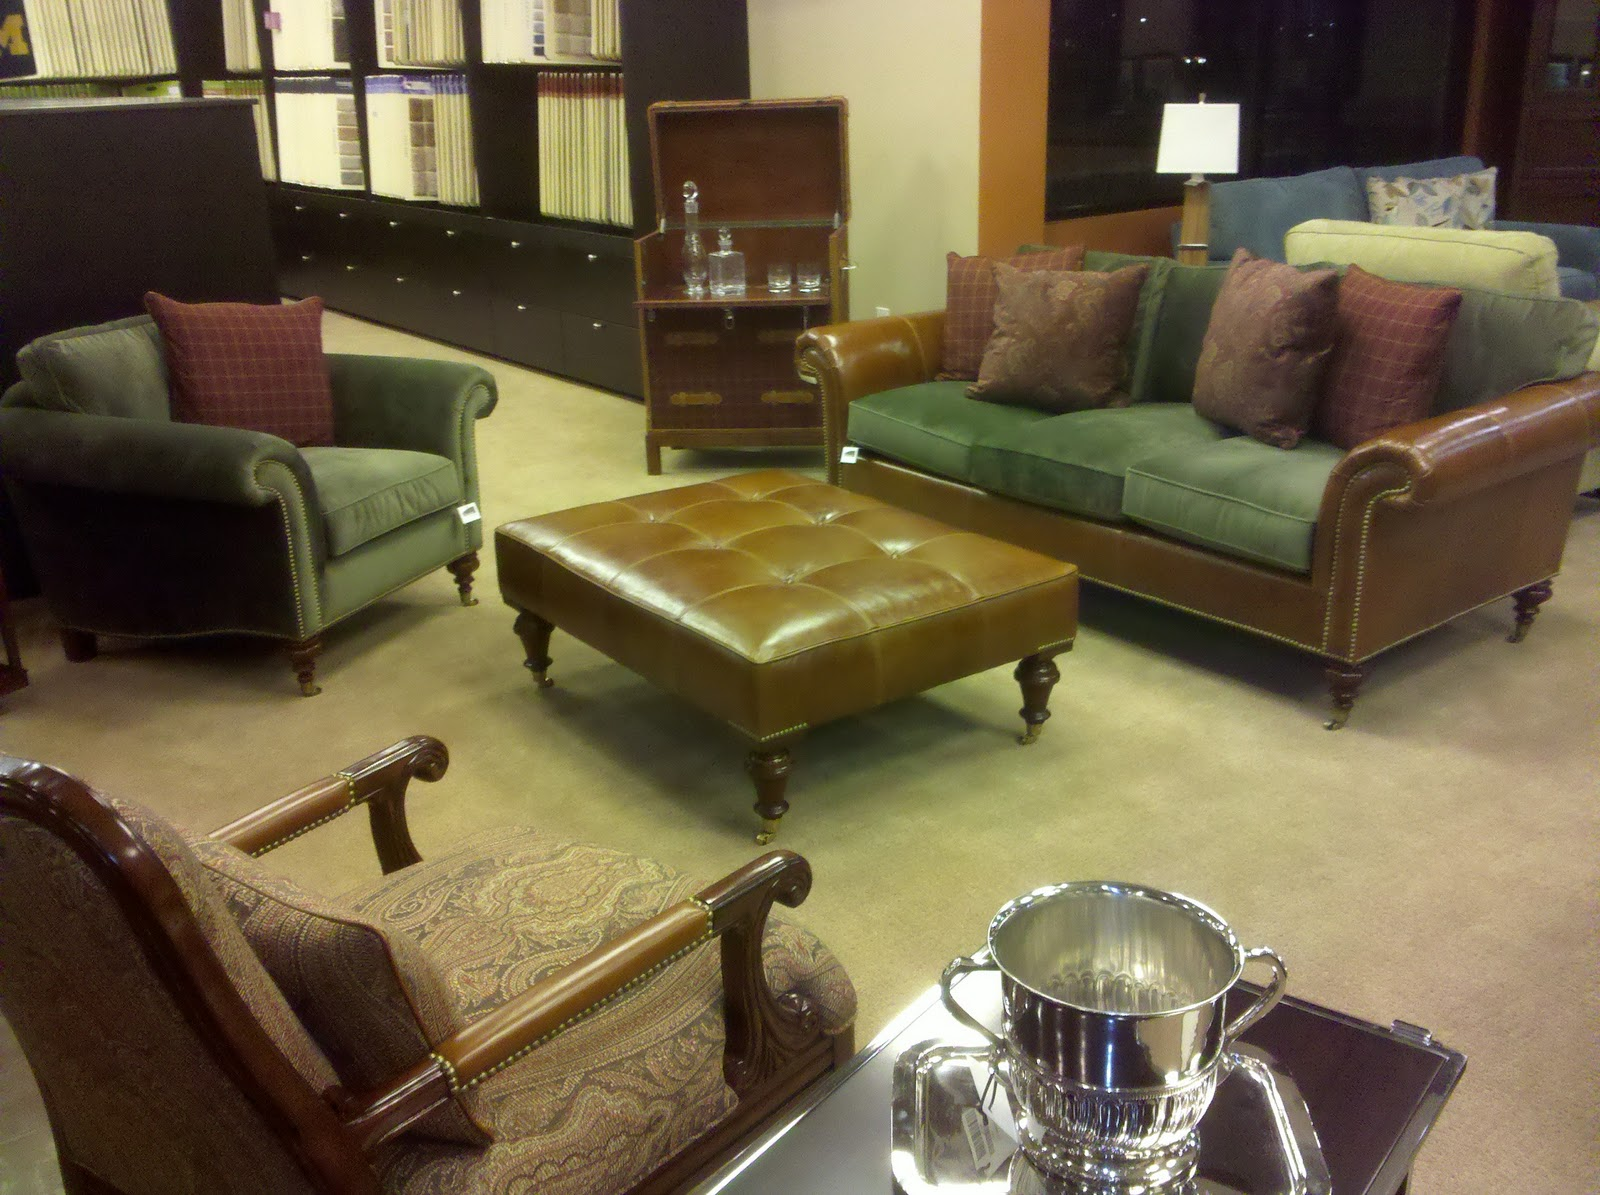 timeless furniture missy archives eheart interior solutions five timeless furniture designs hometone